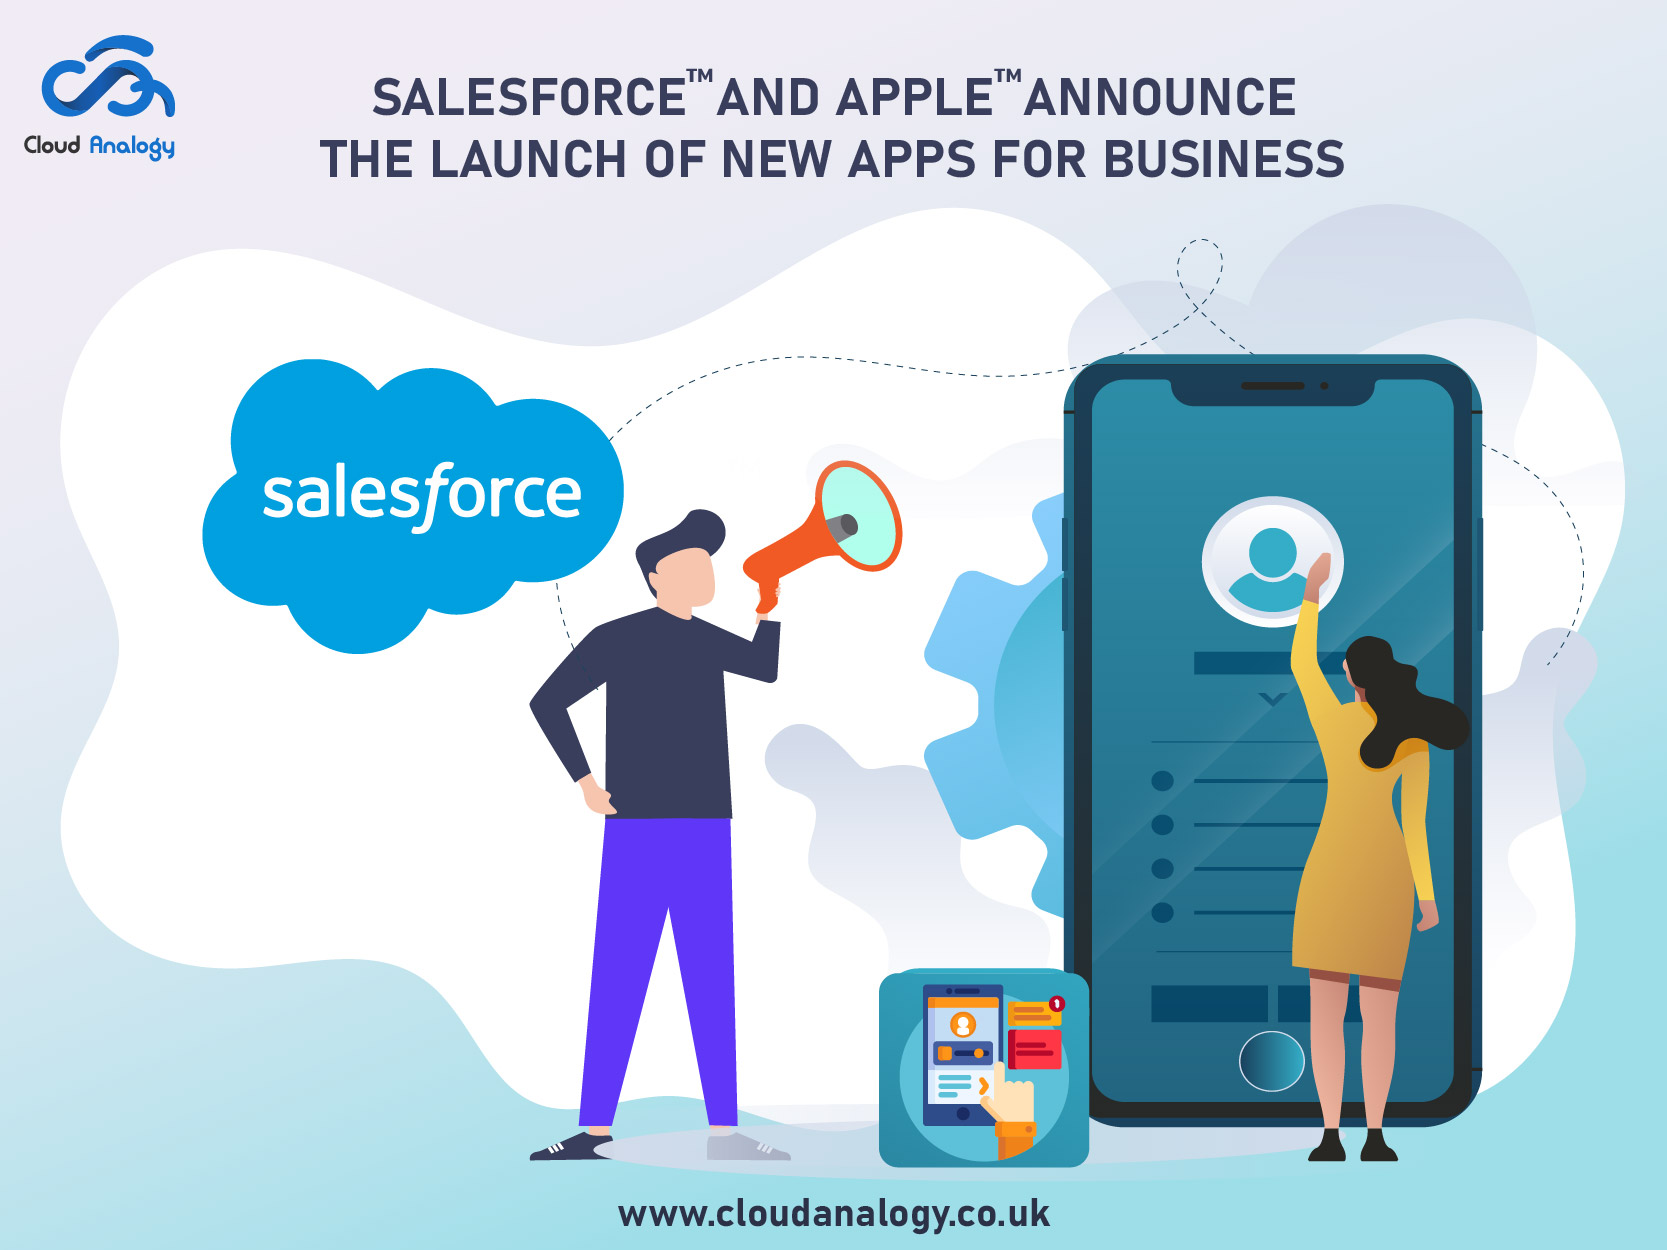 Salesforce and Apple announced the launch of new apps for business